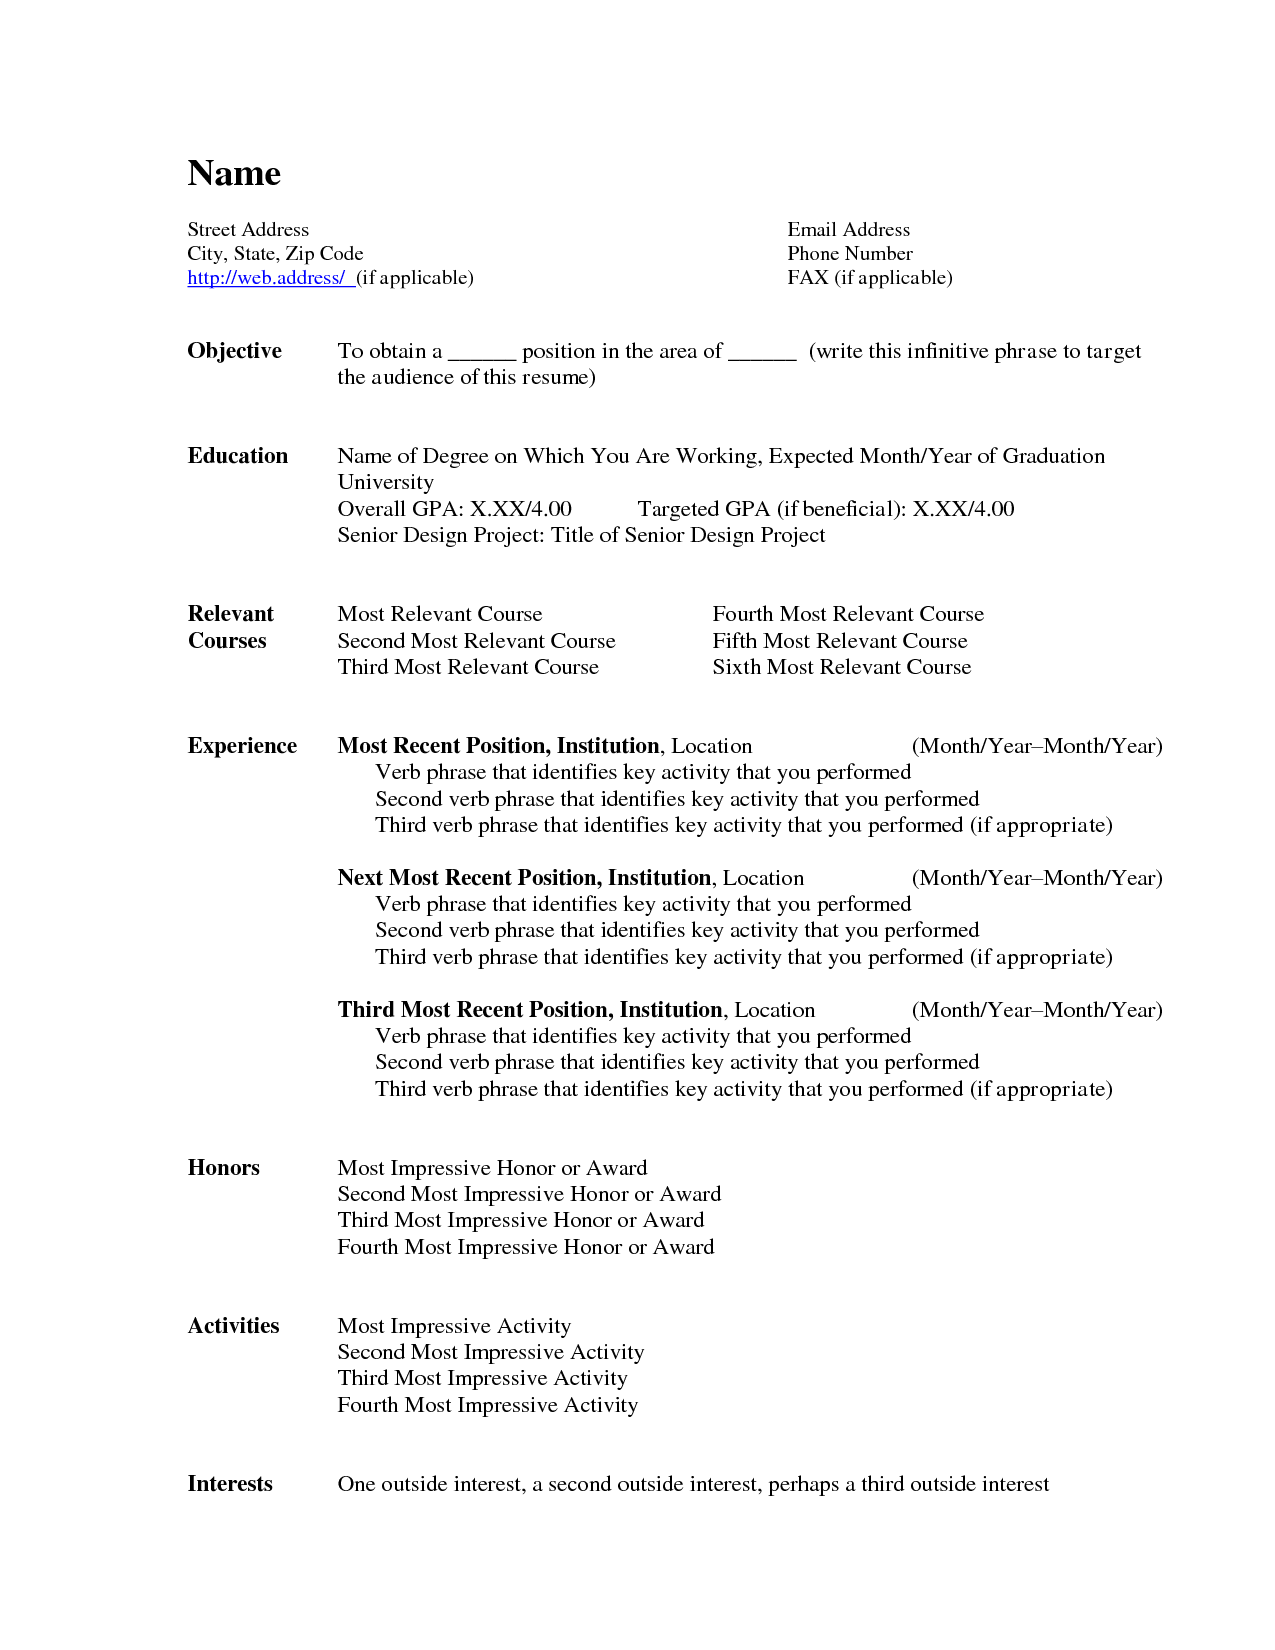 Resume Templates For Microsoft Word Pinresumejob On Resume Job  Pinterest  Microsoft Word